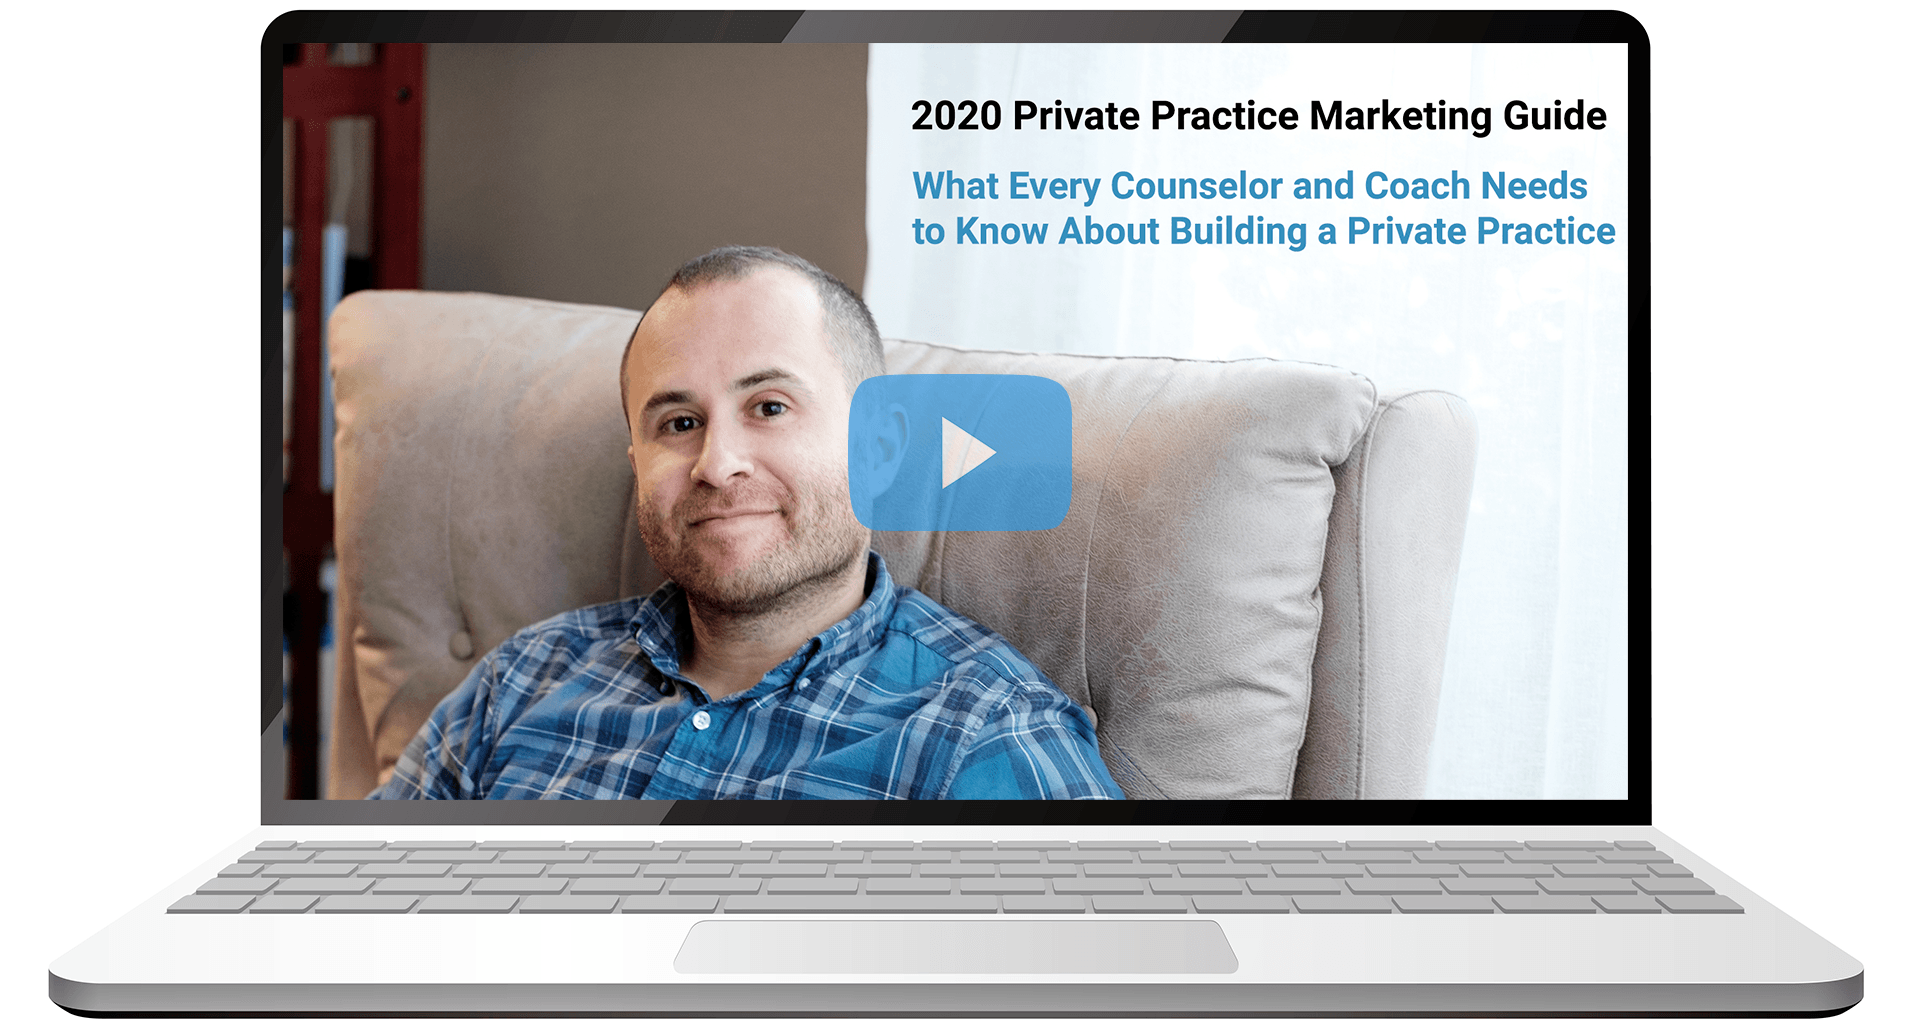 how to become a private practice therapist, how to start a private practice, how to start a counseling private practice